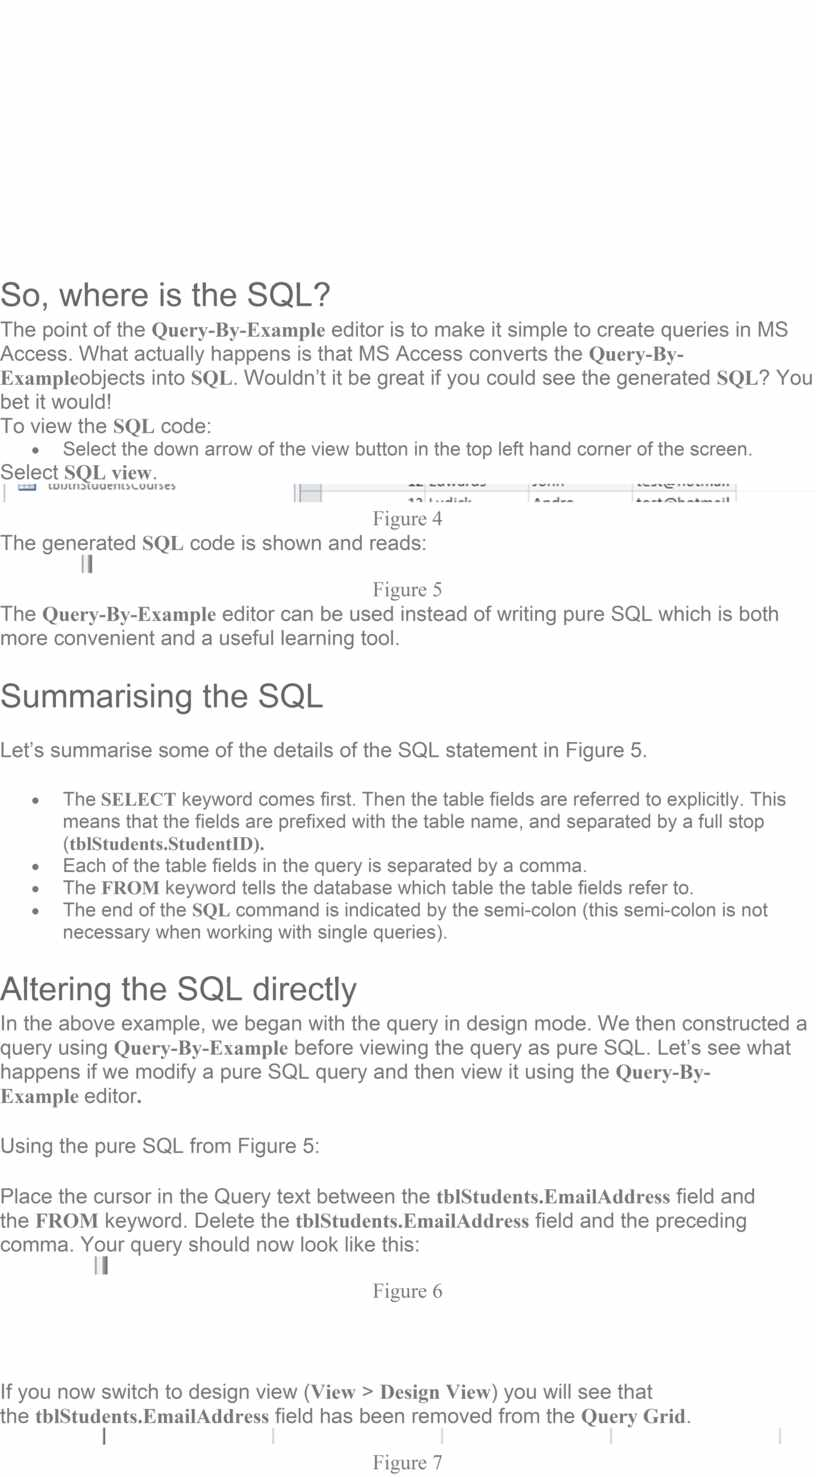 So, where is the SQL? The point of the